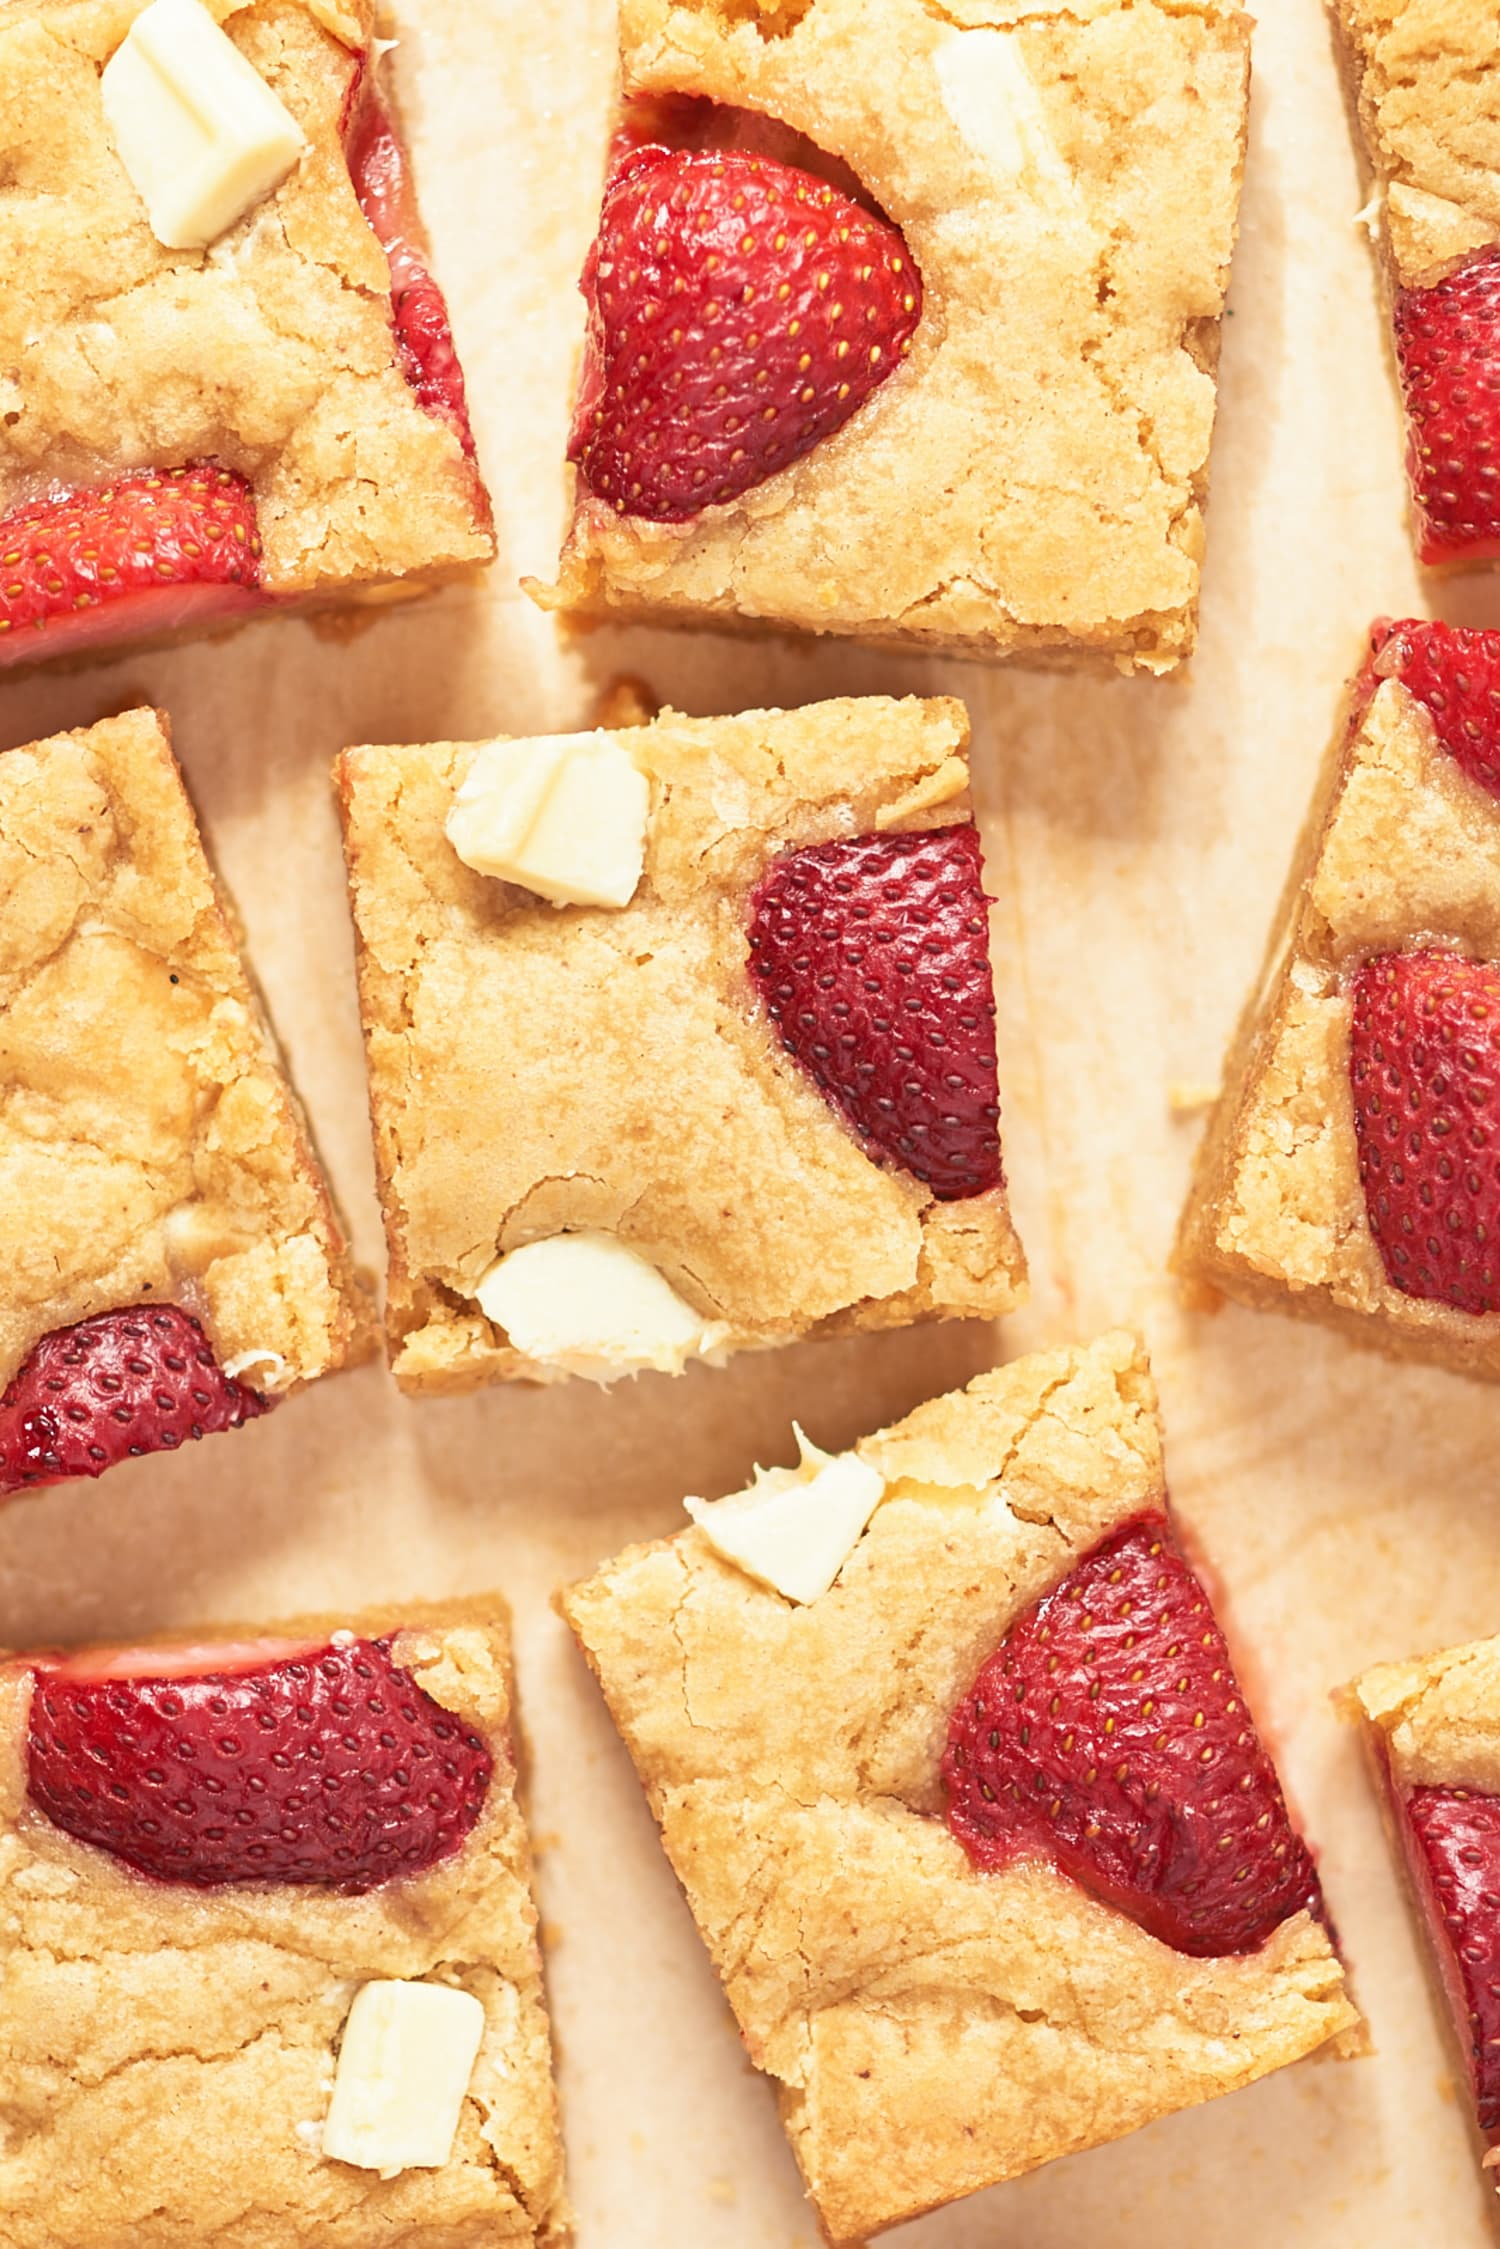 These Buttery Blondies Deserve the #1 Spot on Your Strawberry Baking Bucket List